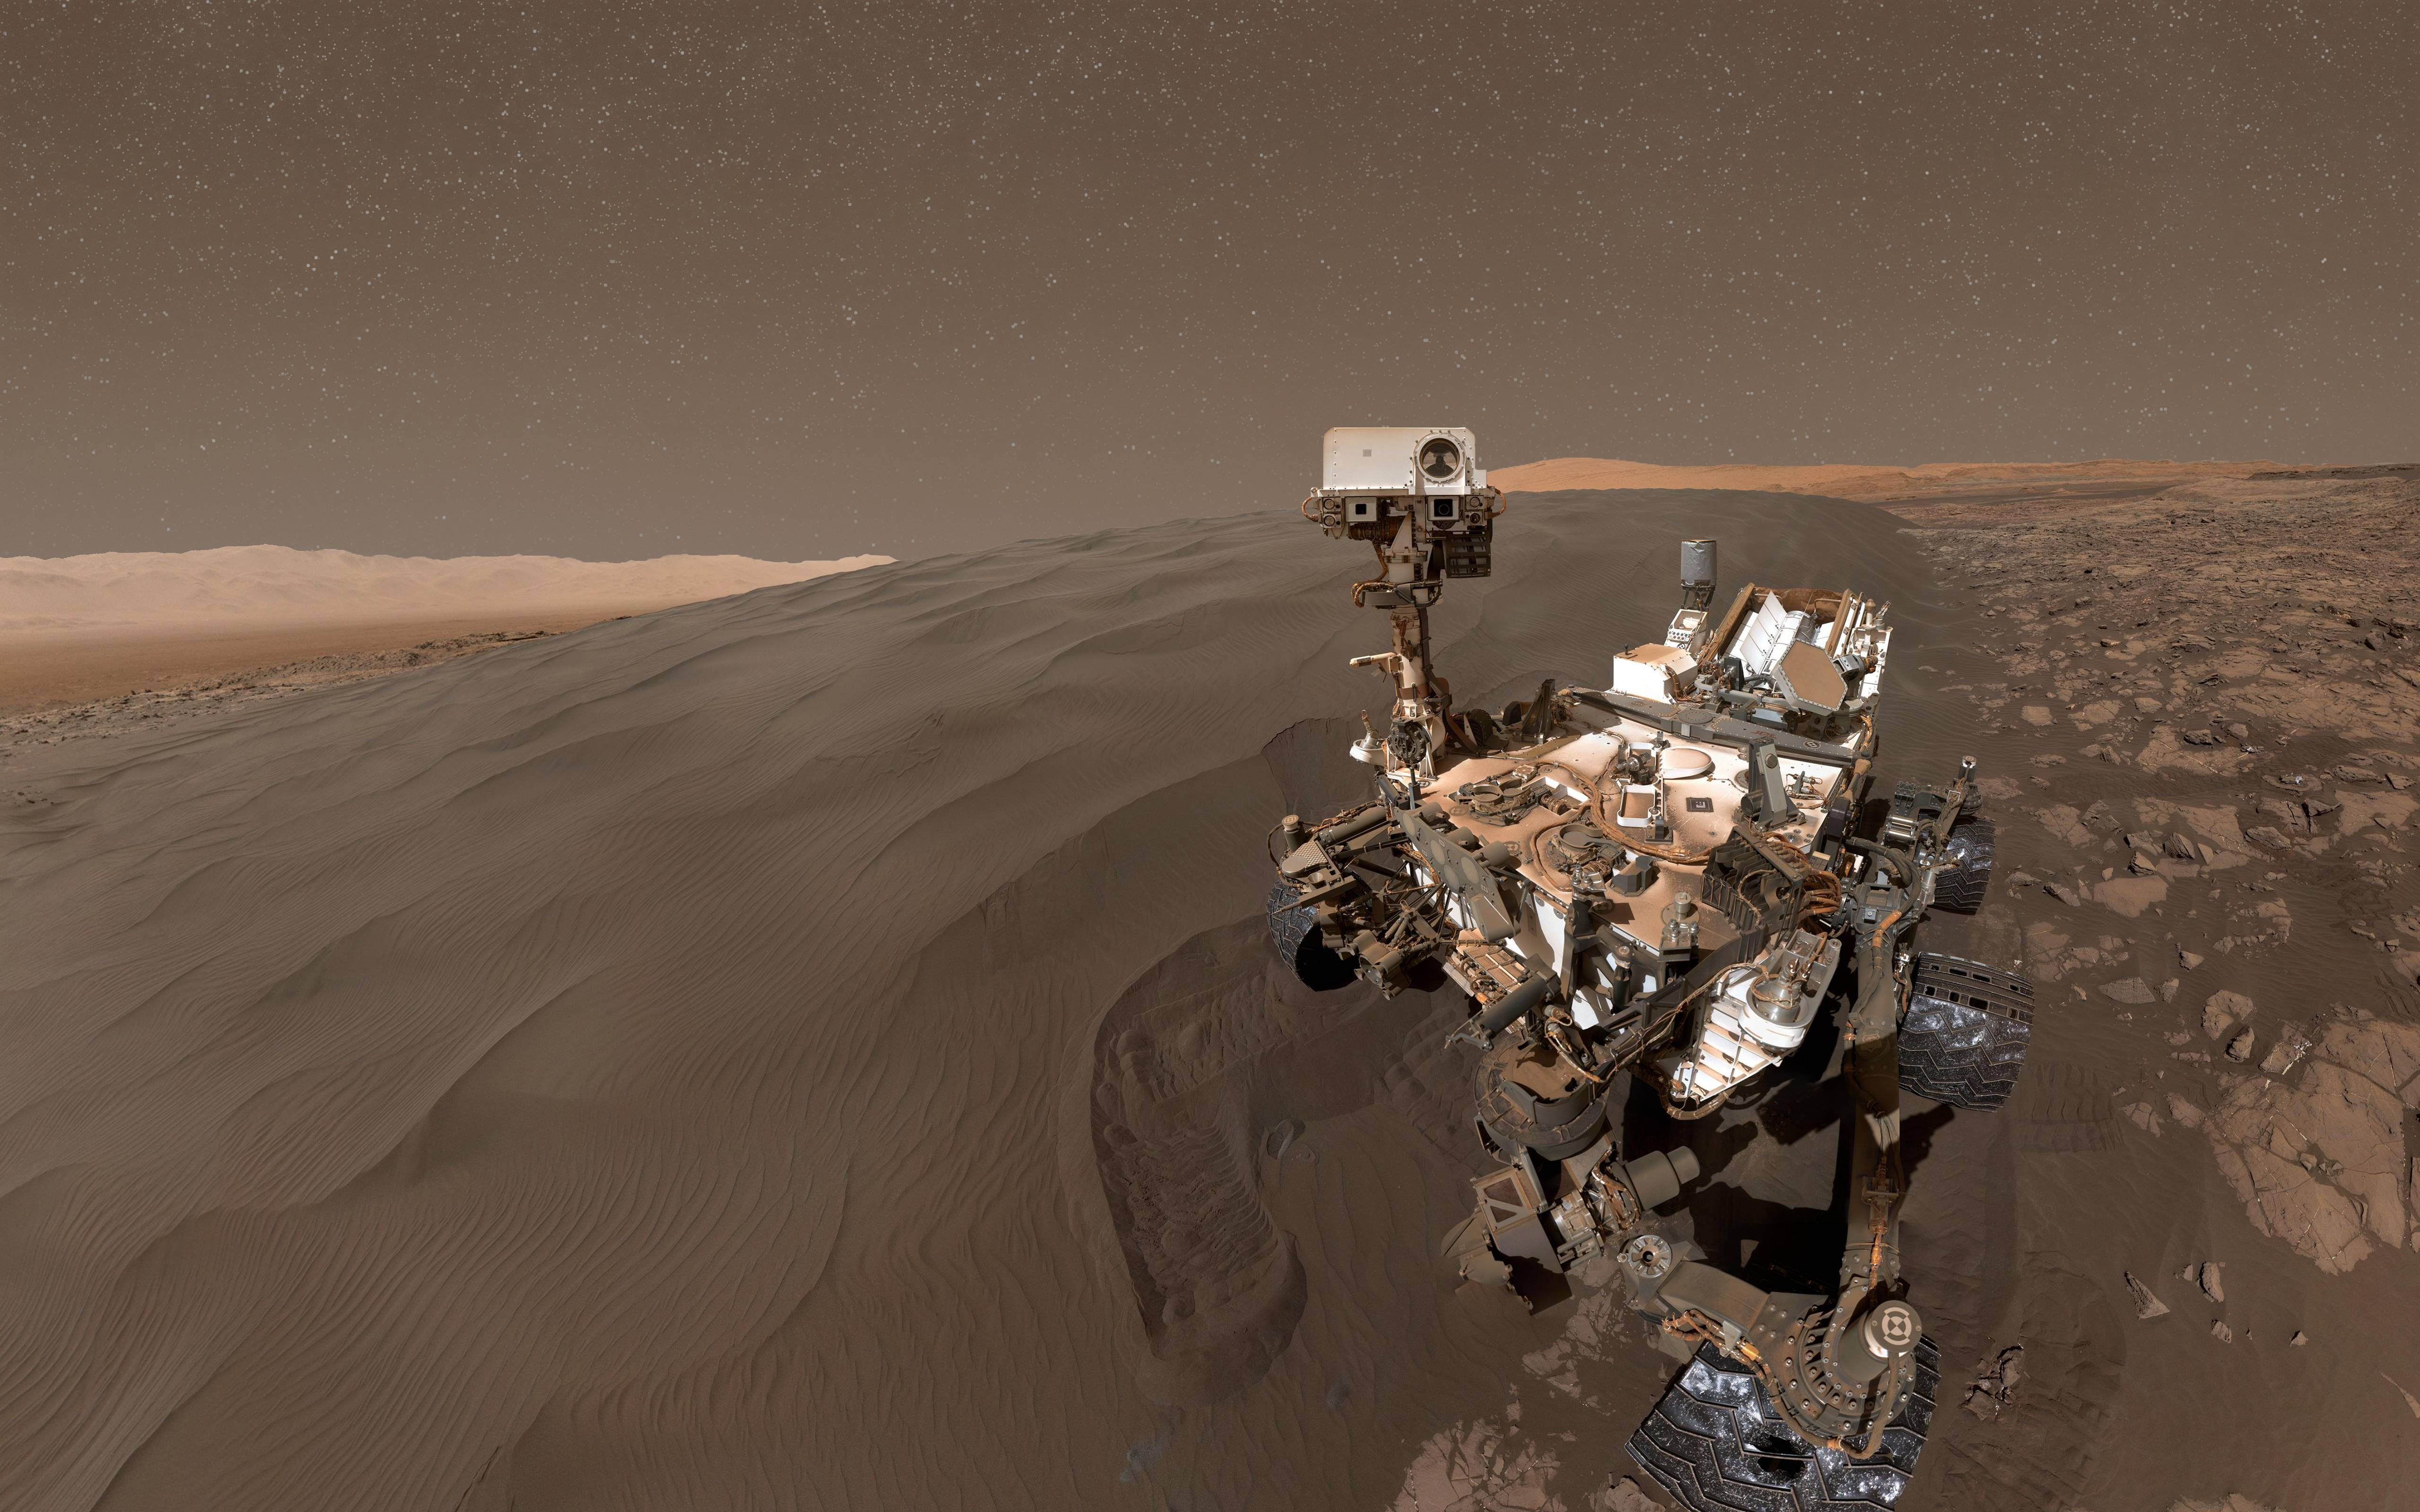 Best Animation Wallpaper For Android Wallpaper Curiosity Rover Selfie Mars Duna Space 8716